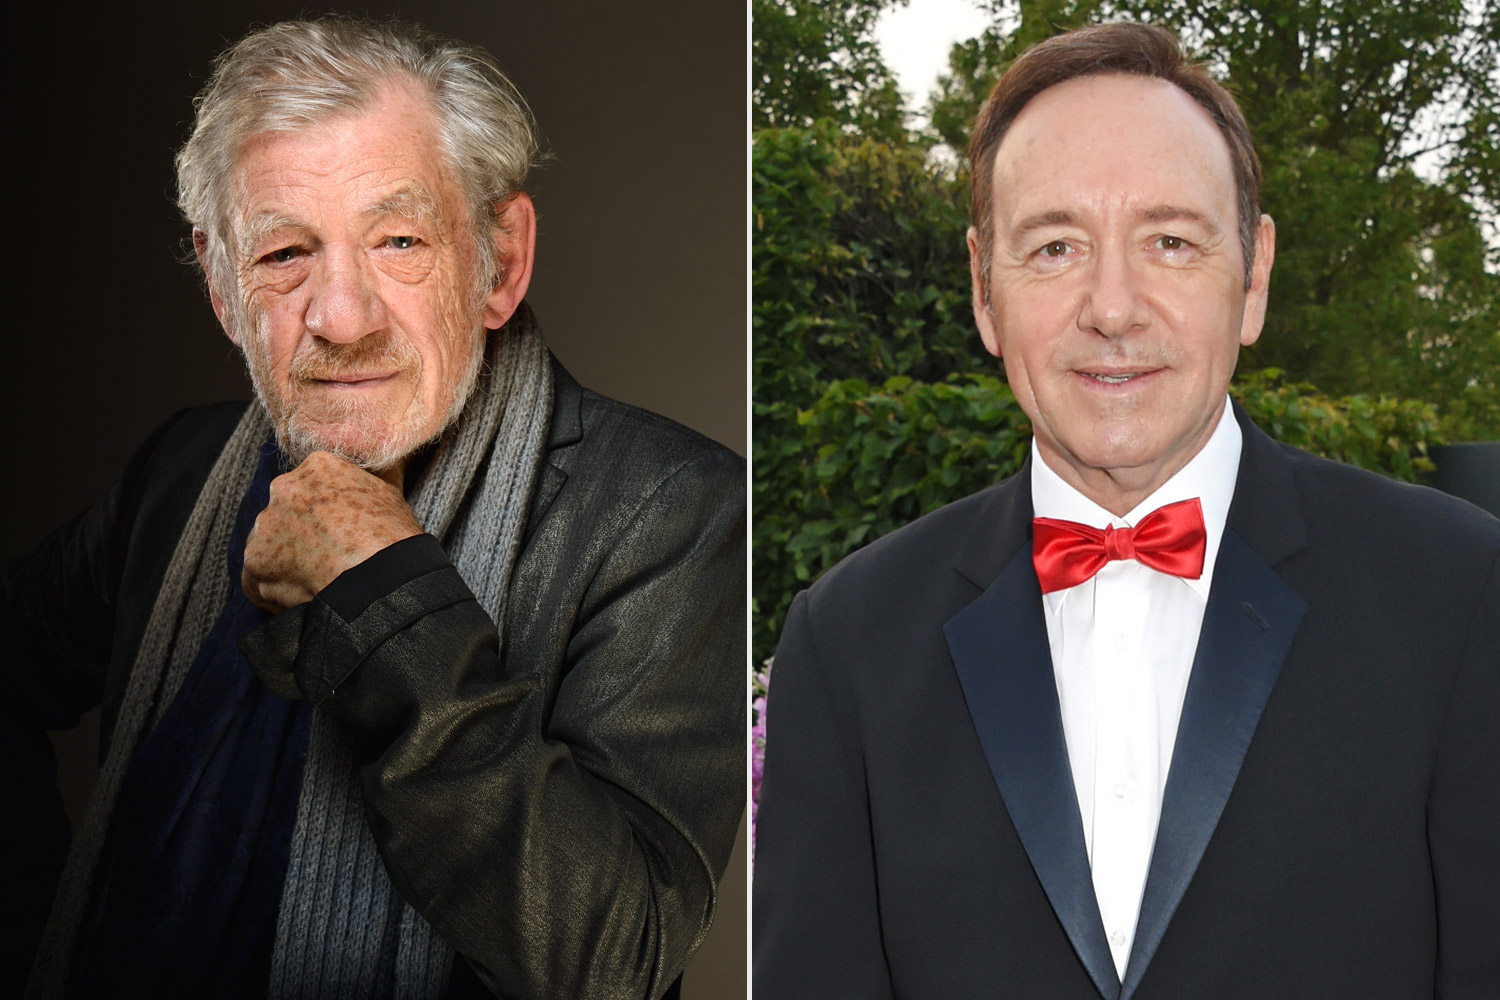 Ian-Kevin-Spacey